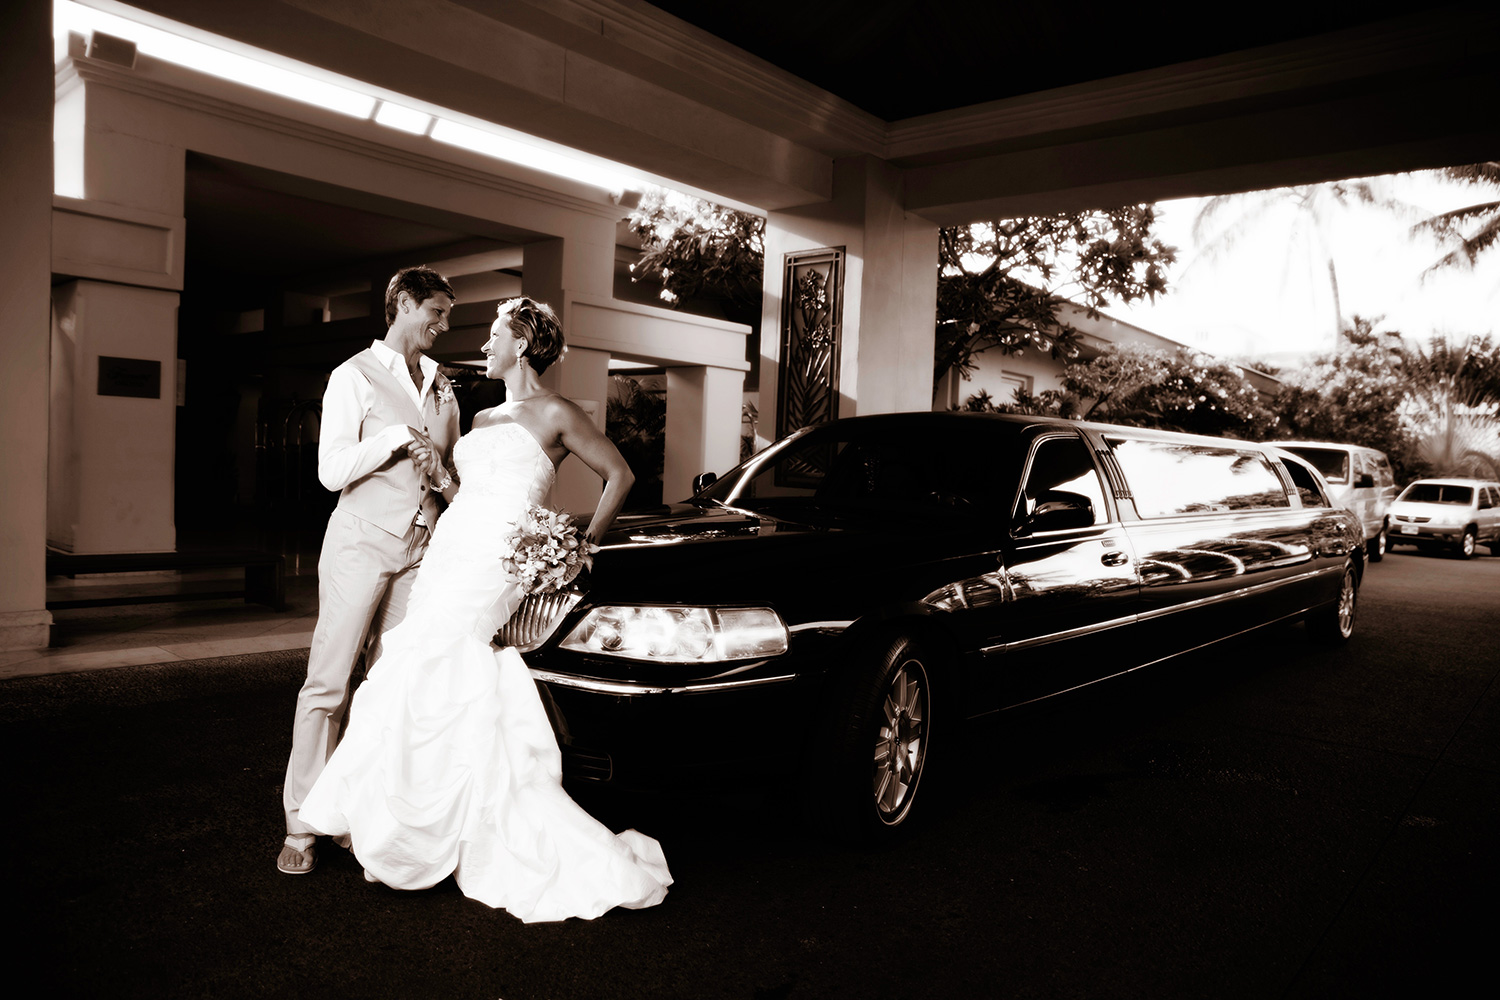 Wedding Video - Our wedding videos are contemporary timeless movie productions that capture the essence of your wedding day.